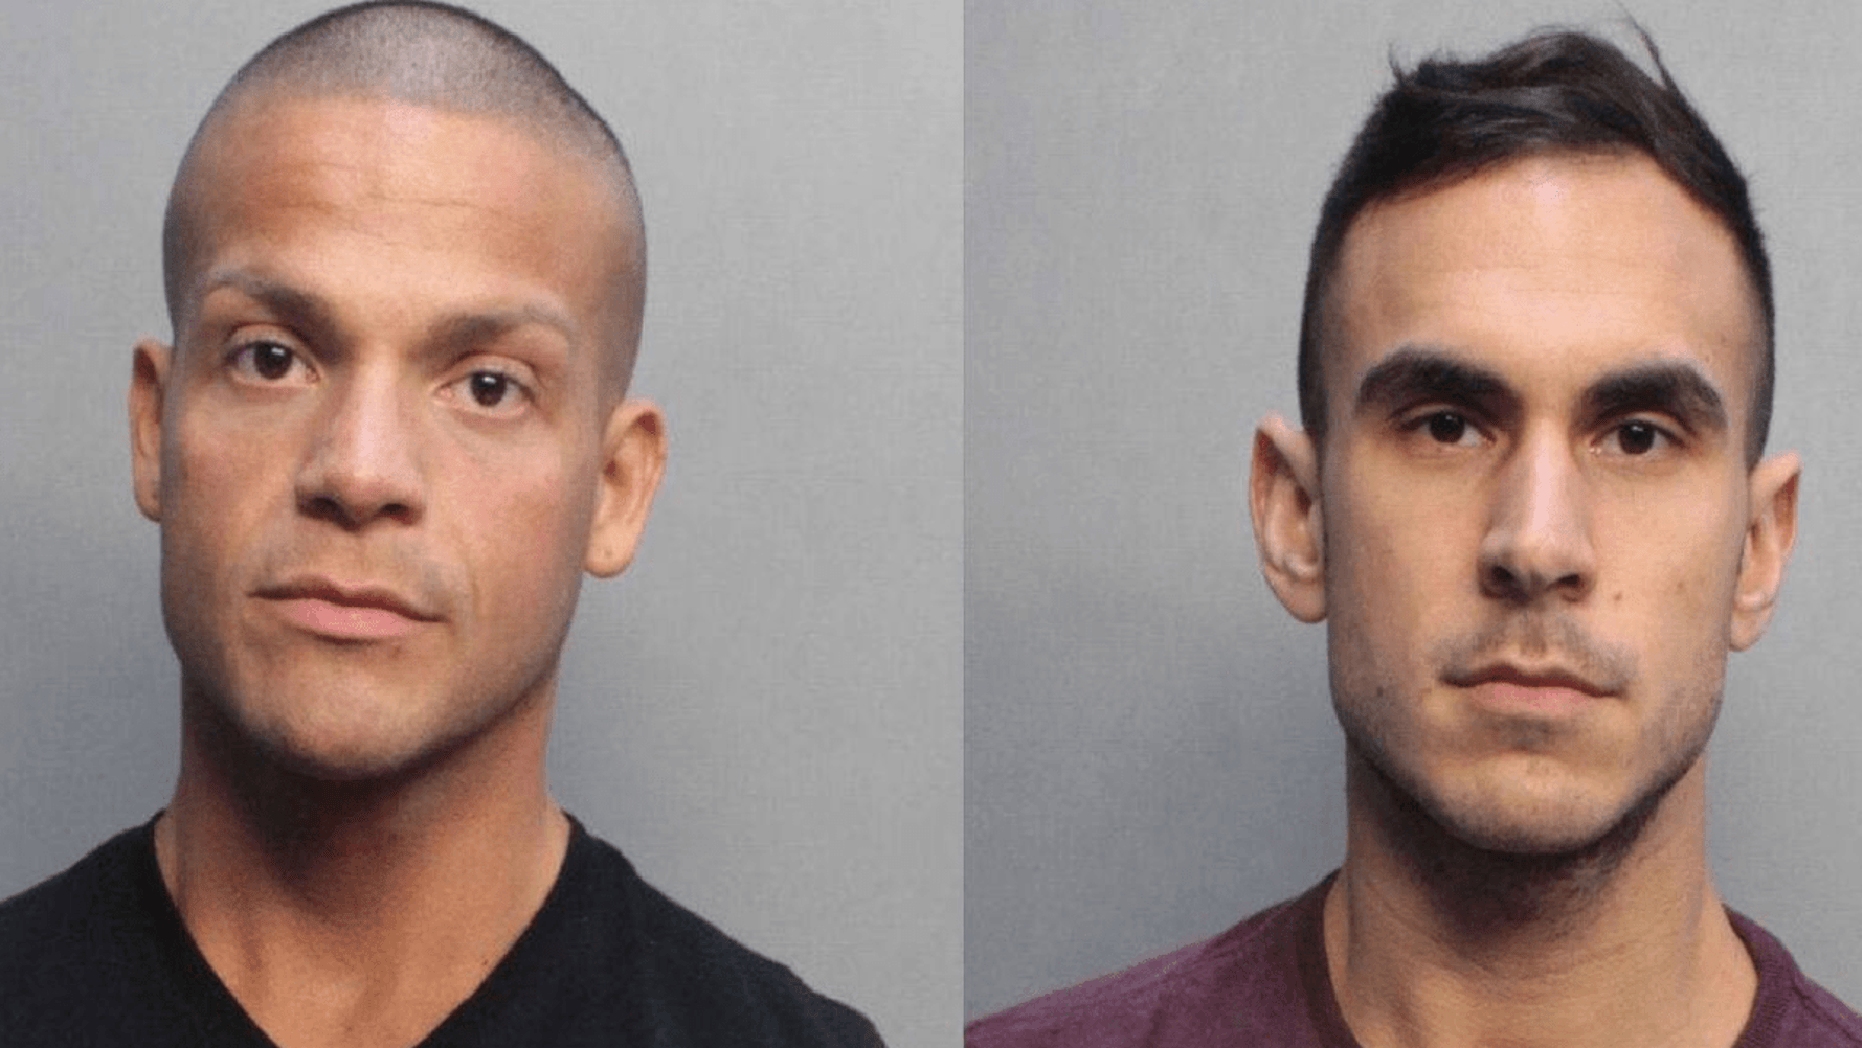 Peter Melendez, 35, (left) and Robert Koehler, 27, (right) were busted by federal agents after trying to smuggle an array of drugs on to a cruise ship.